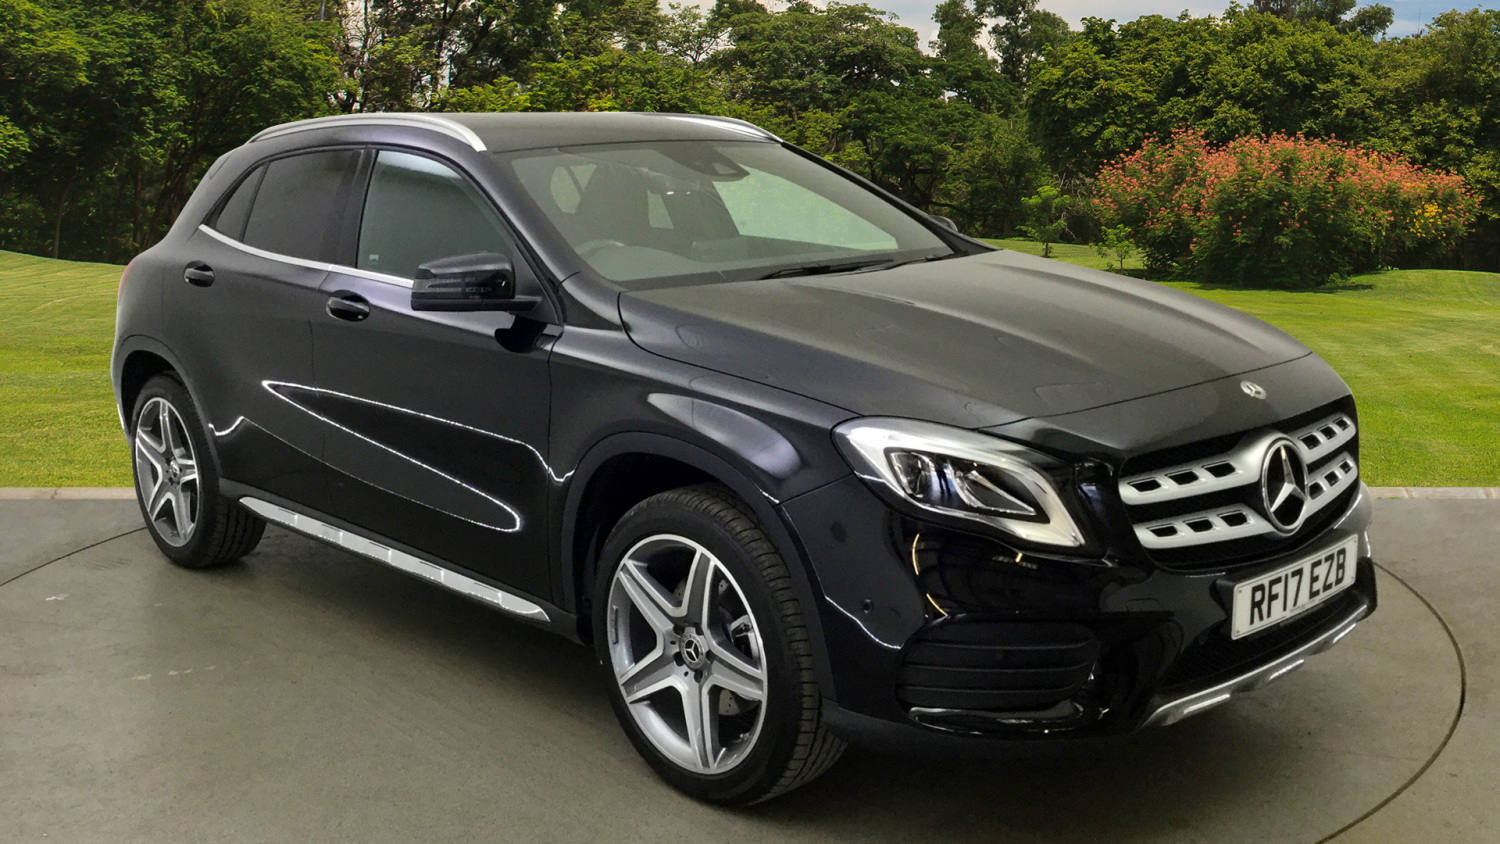 used mercedes benz gla gla 220d 4matic amg line premium 5dr auto diesel hatchback for sale. Black Bedroom Furniture Sets. Home Design Ideas